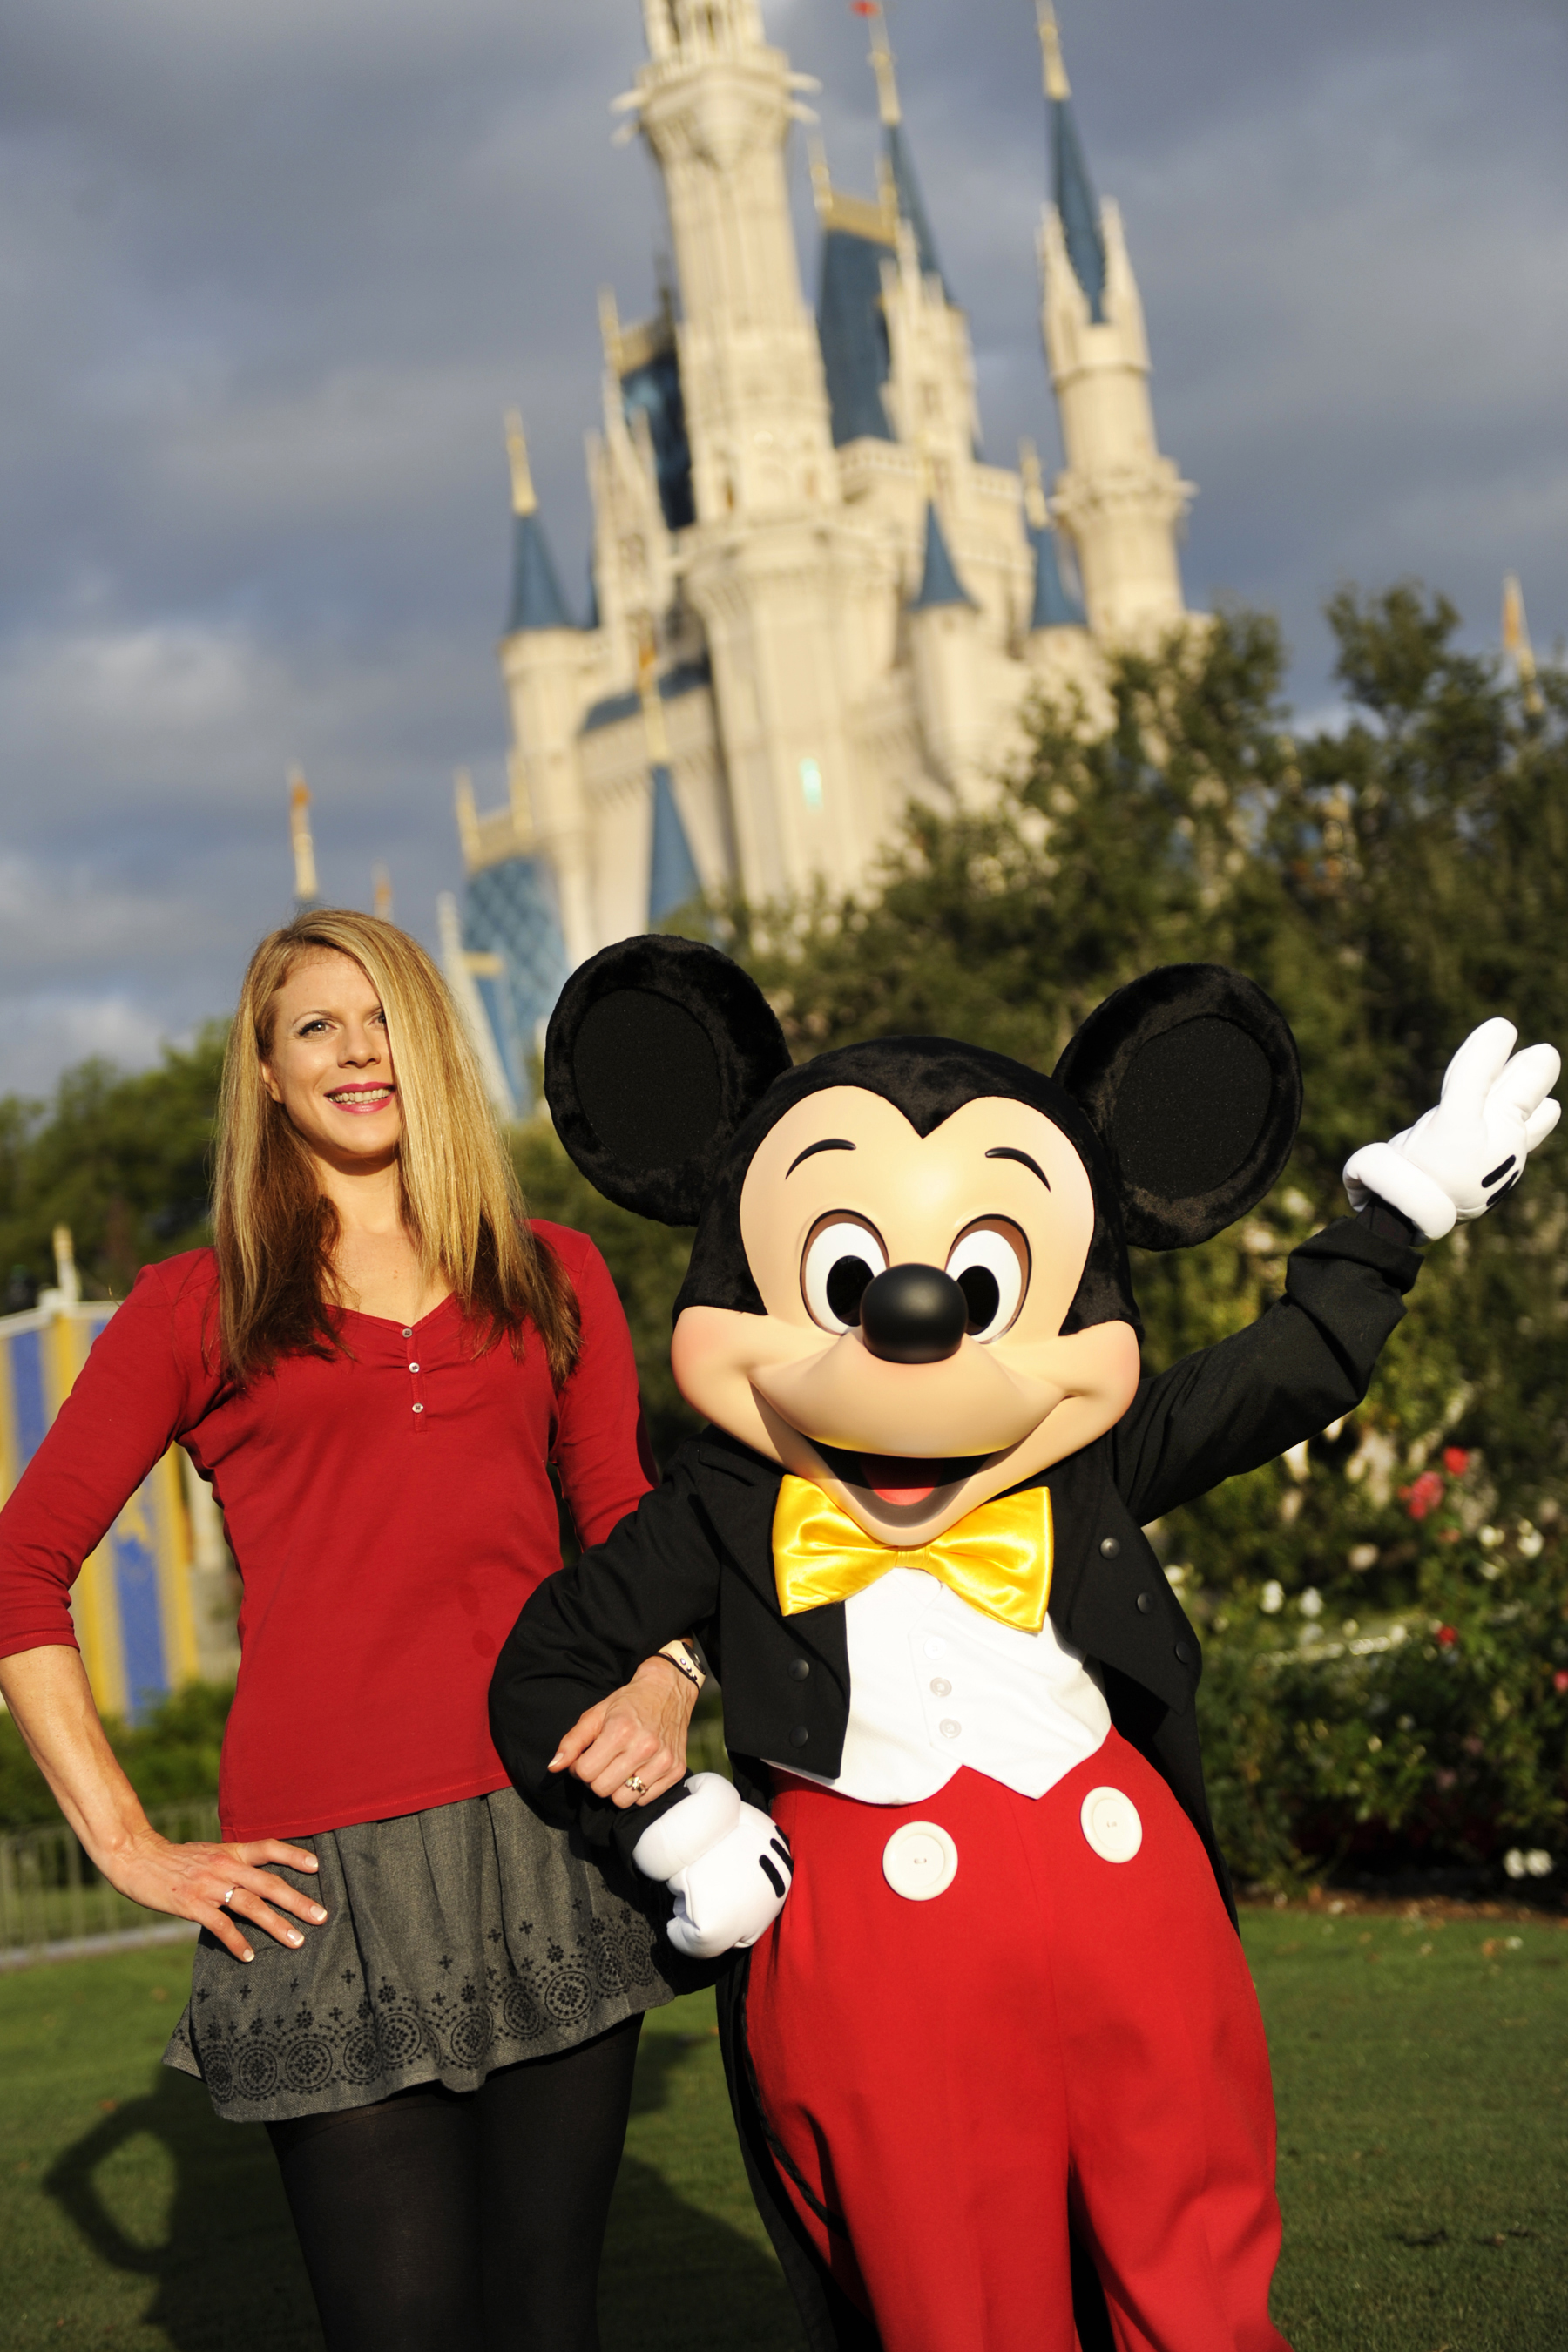 Tips for Walt Disney World from a Disney Moms Panelist